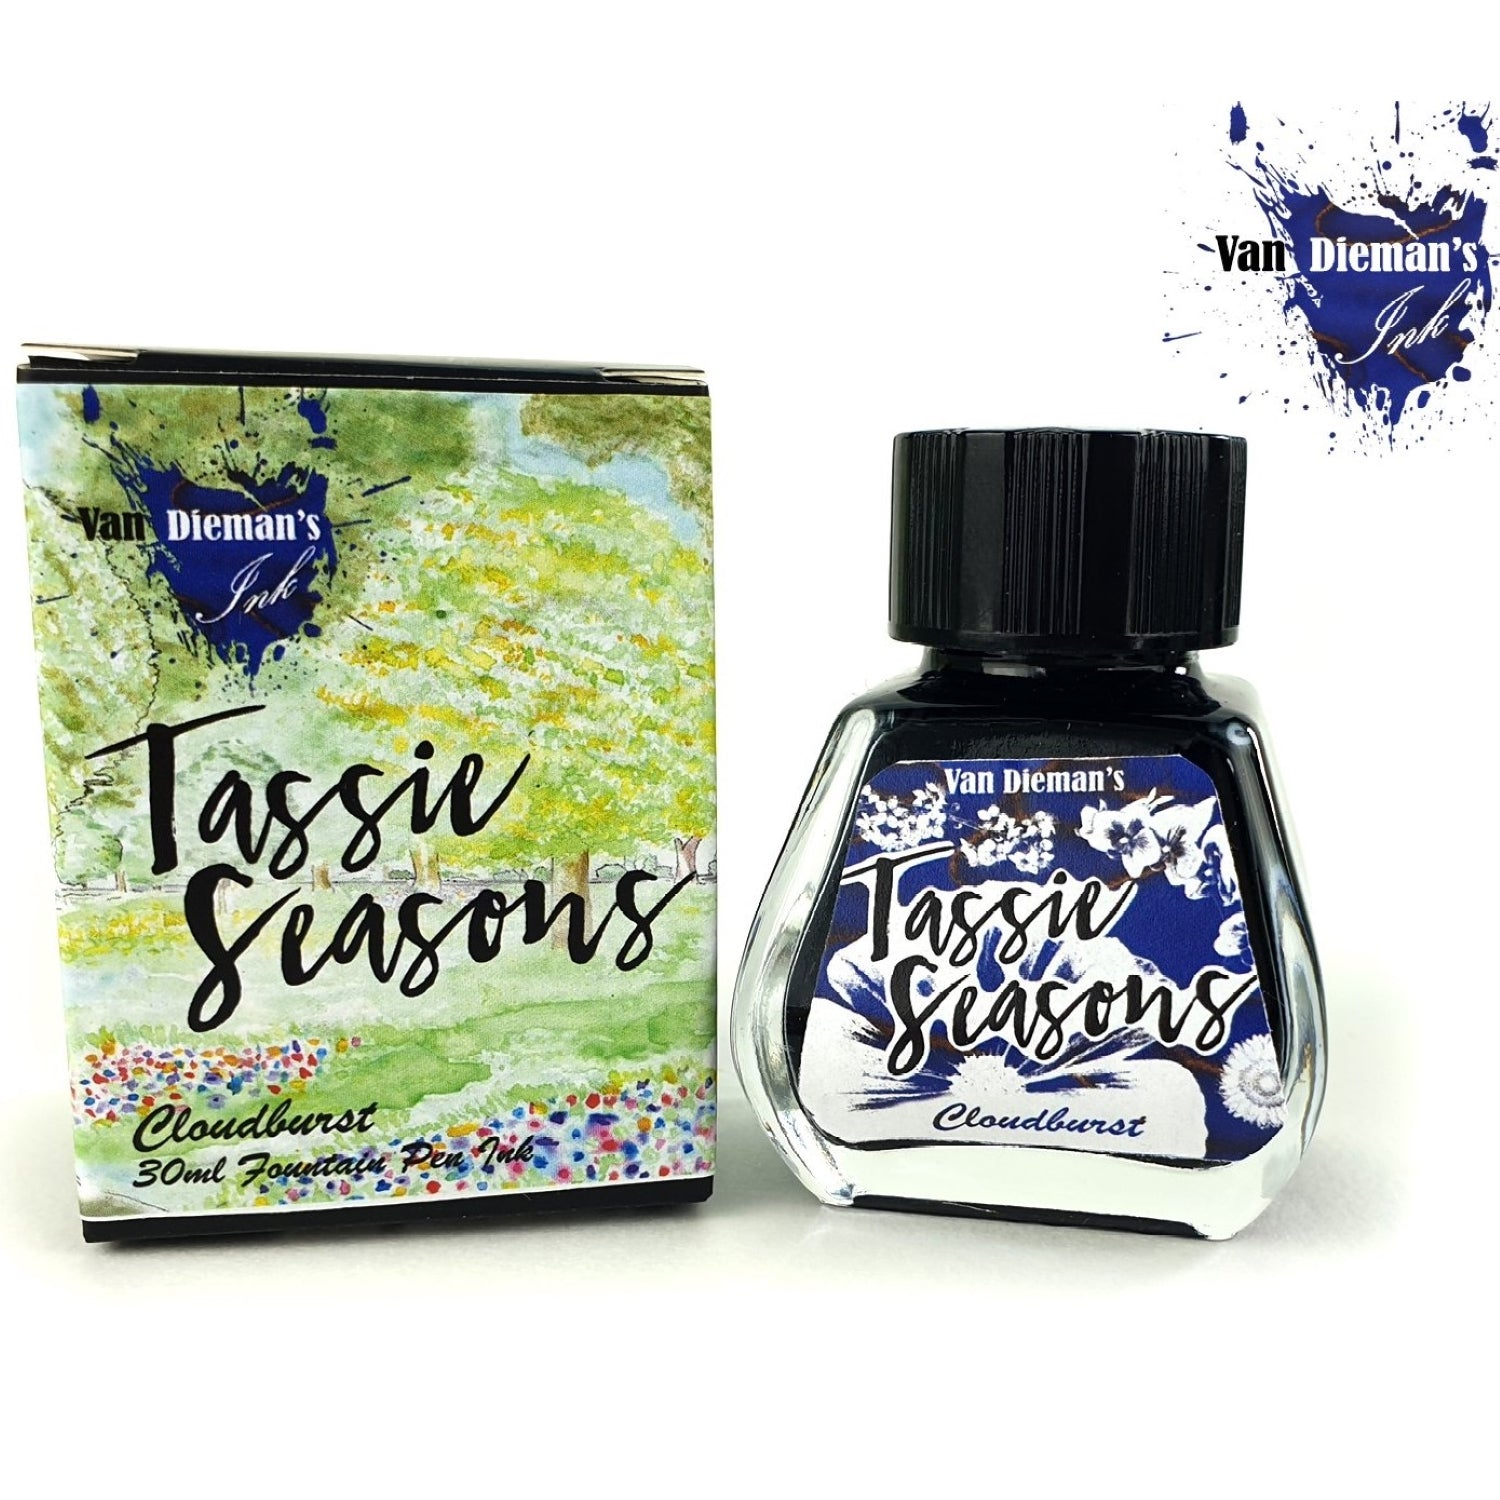 Van Diemans Tassie Seasons (Spring) Cloudburst Ink 30ml